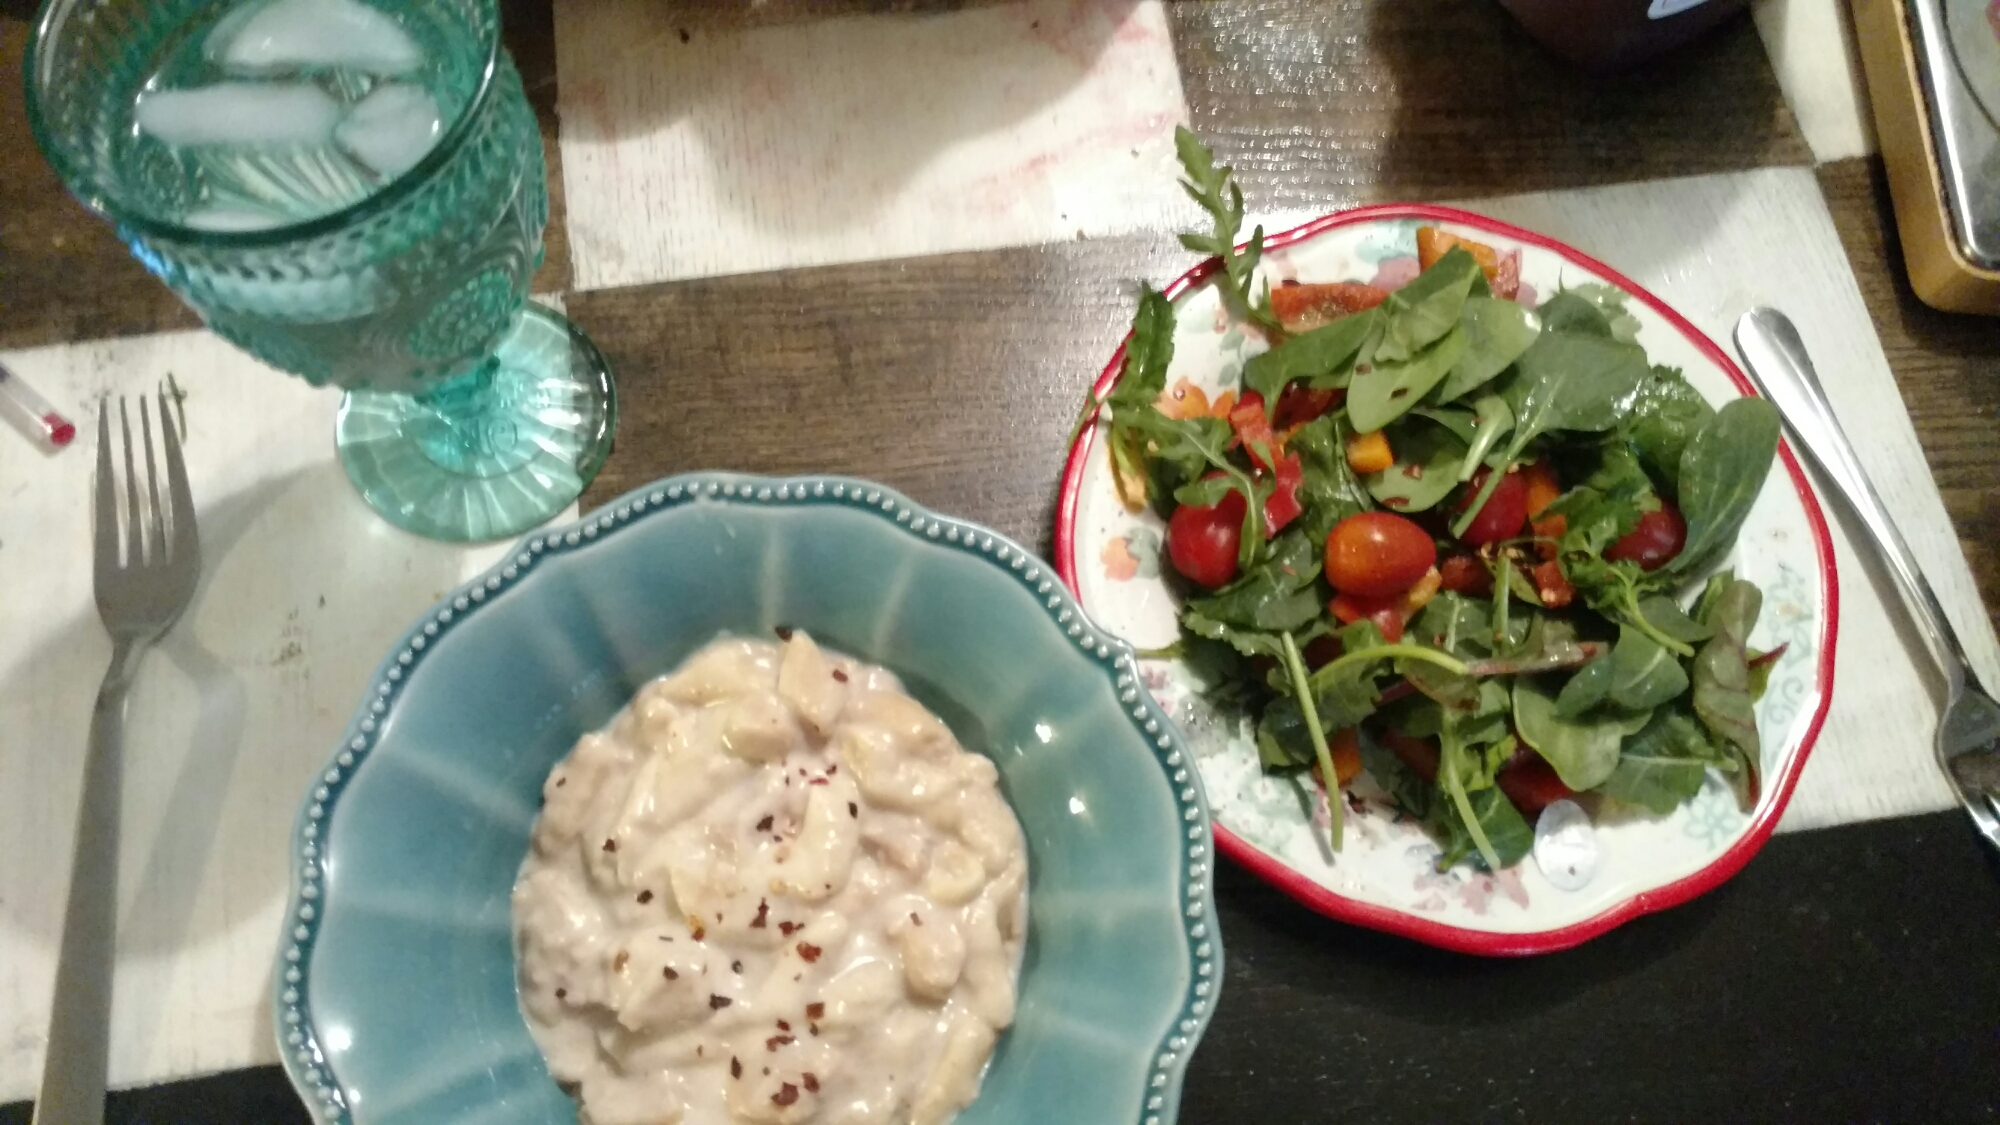 Why Choose Nutrisystem - Example Meal on Nutrisystem #NSNation Ad #Nutrisystem